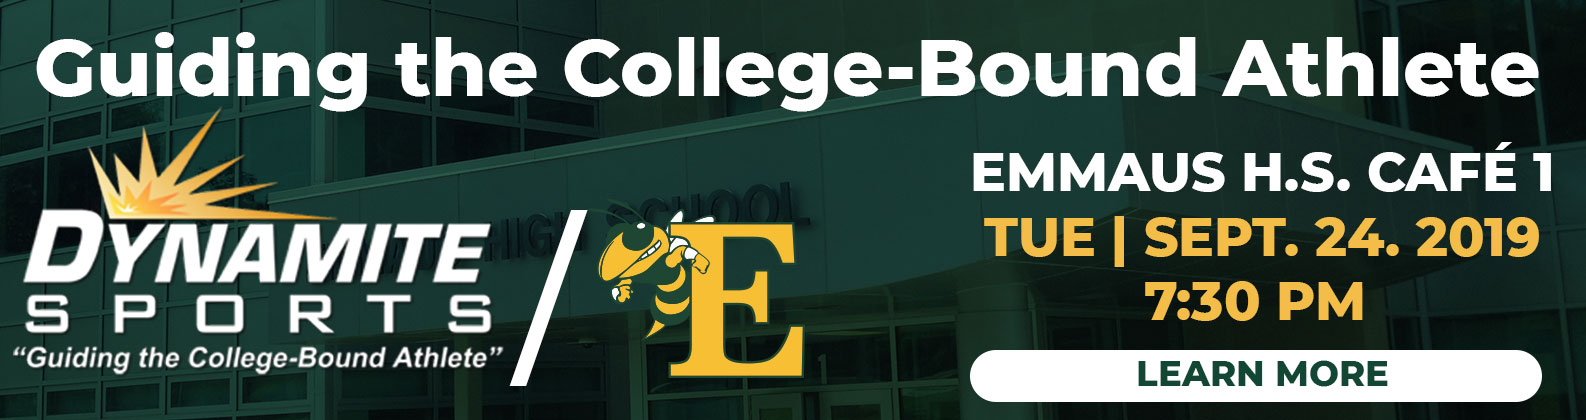 Guilding the College-Bound Athlete Event Banner - Click to learn more